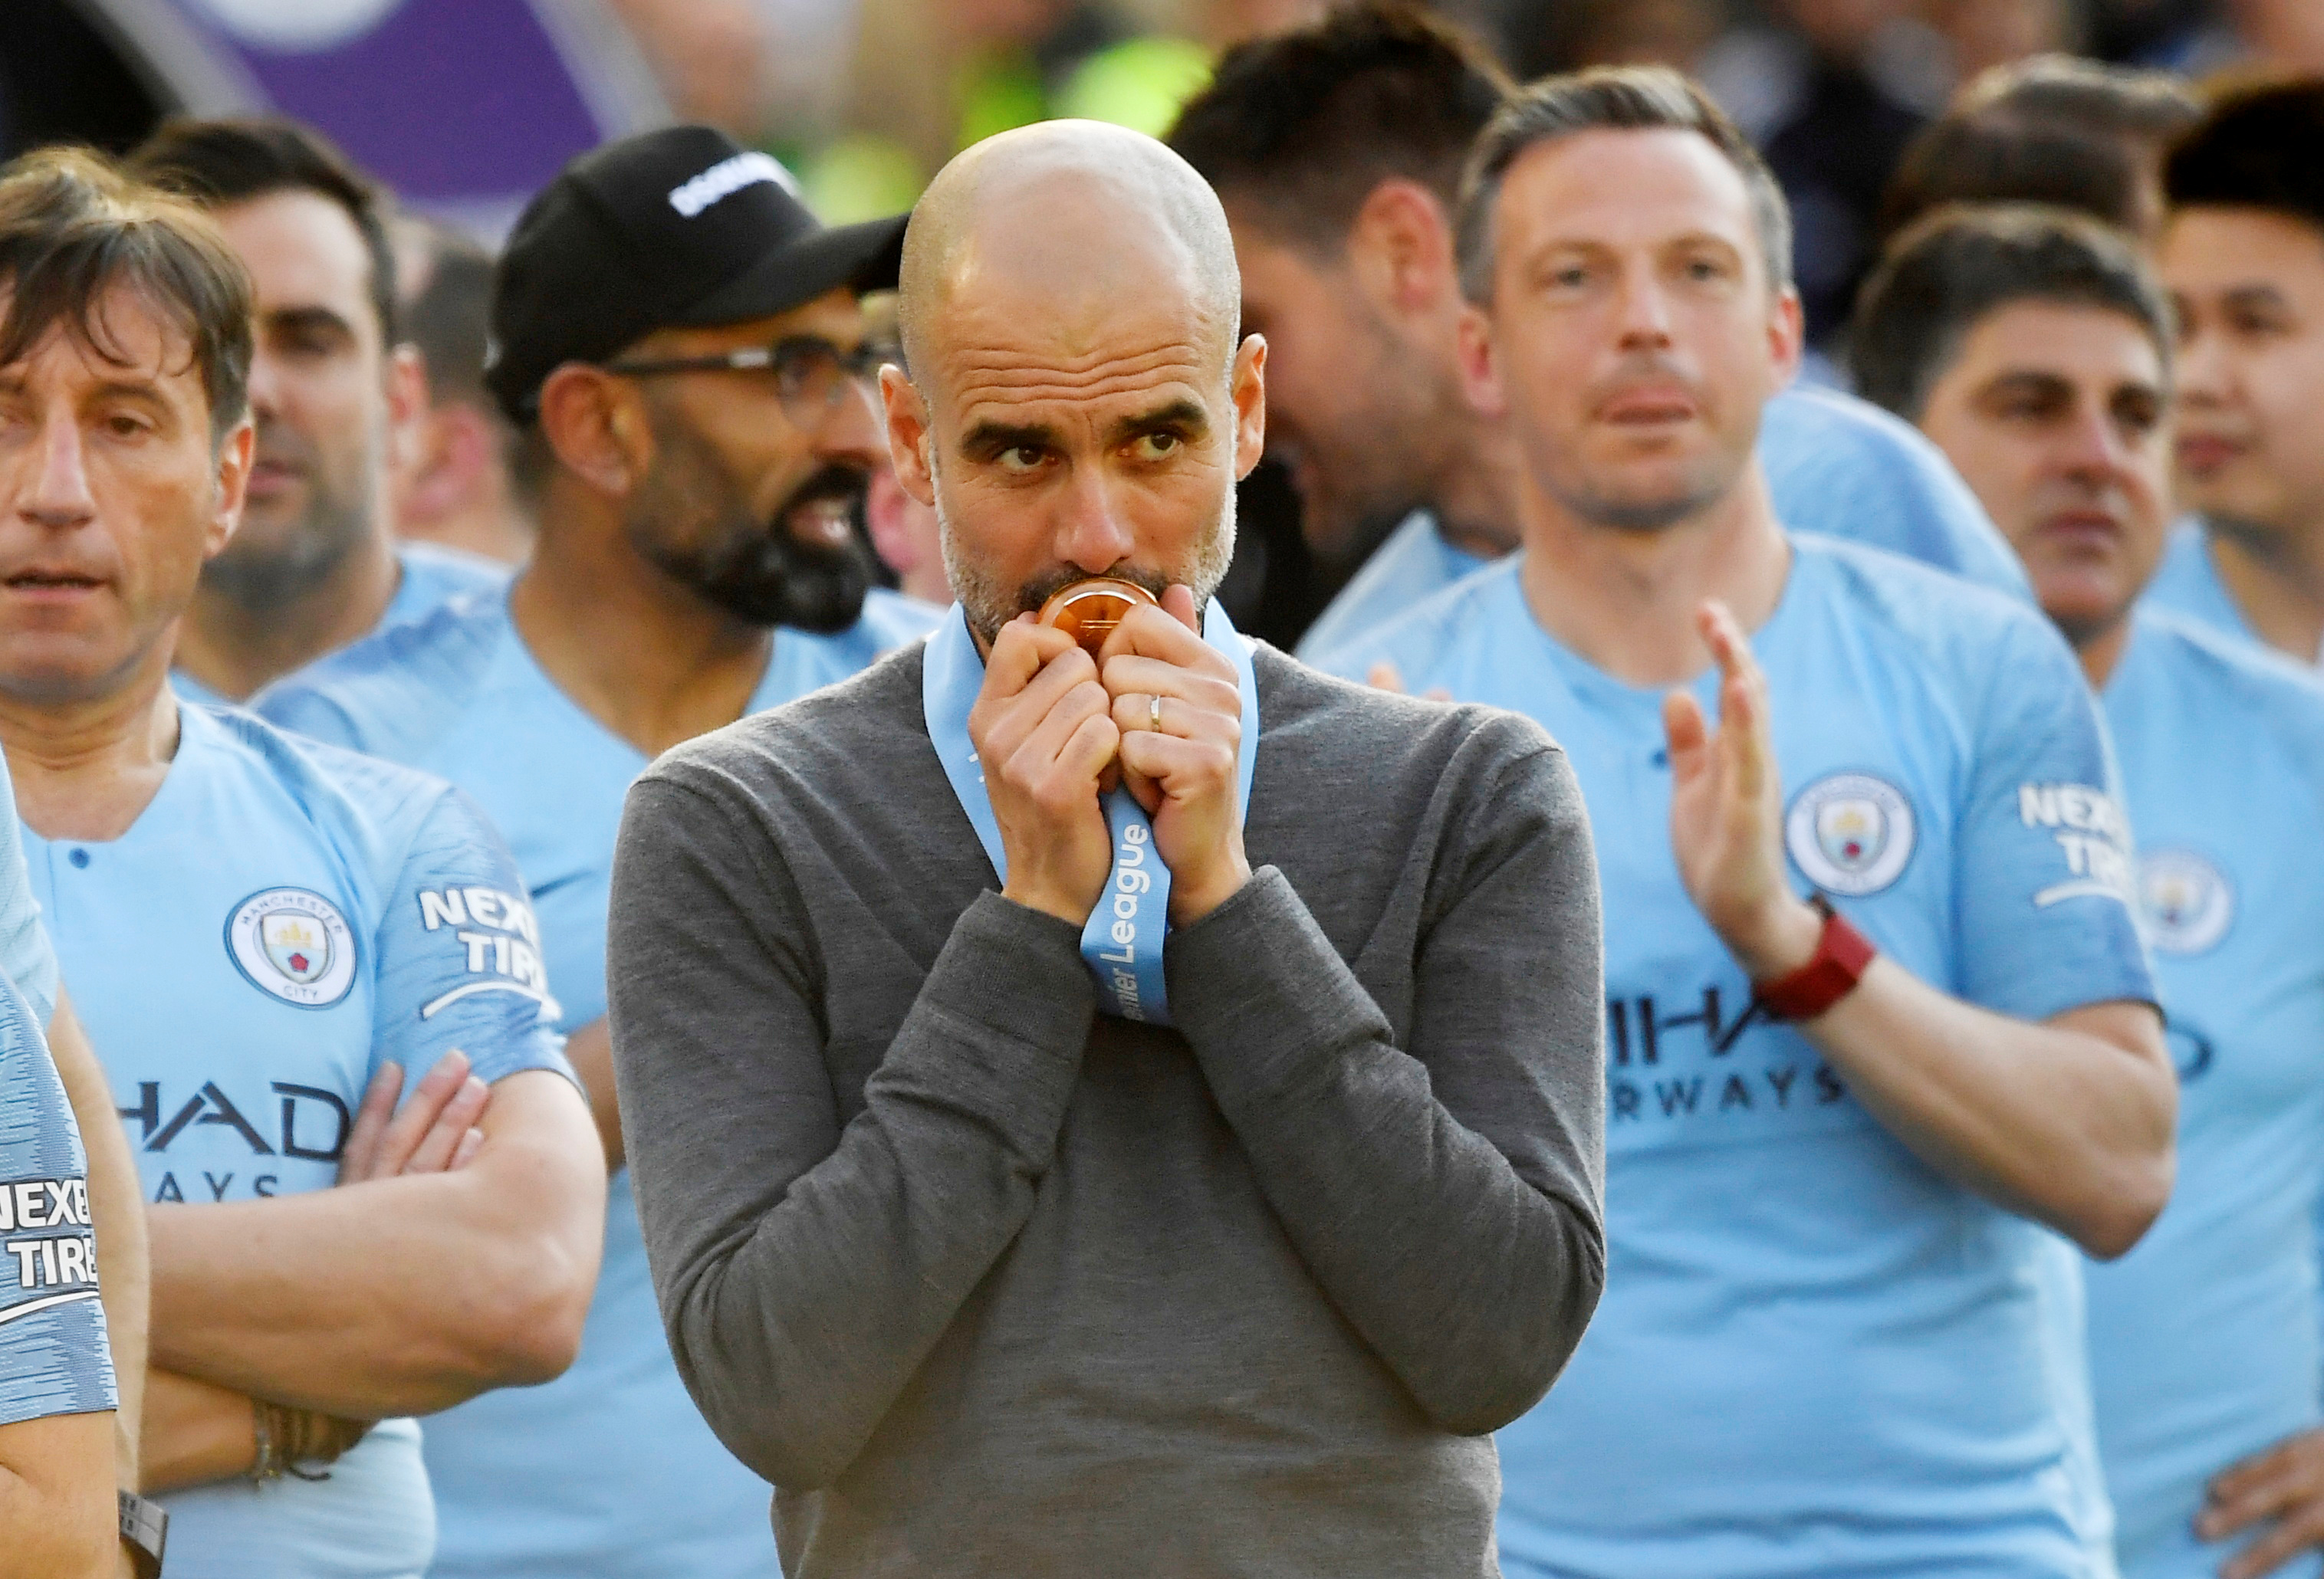 Football - Ligue des champions - Fair-play financier : Manchester City exclu de la Ligue des champions pour une saison ?